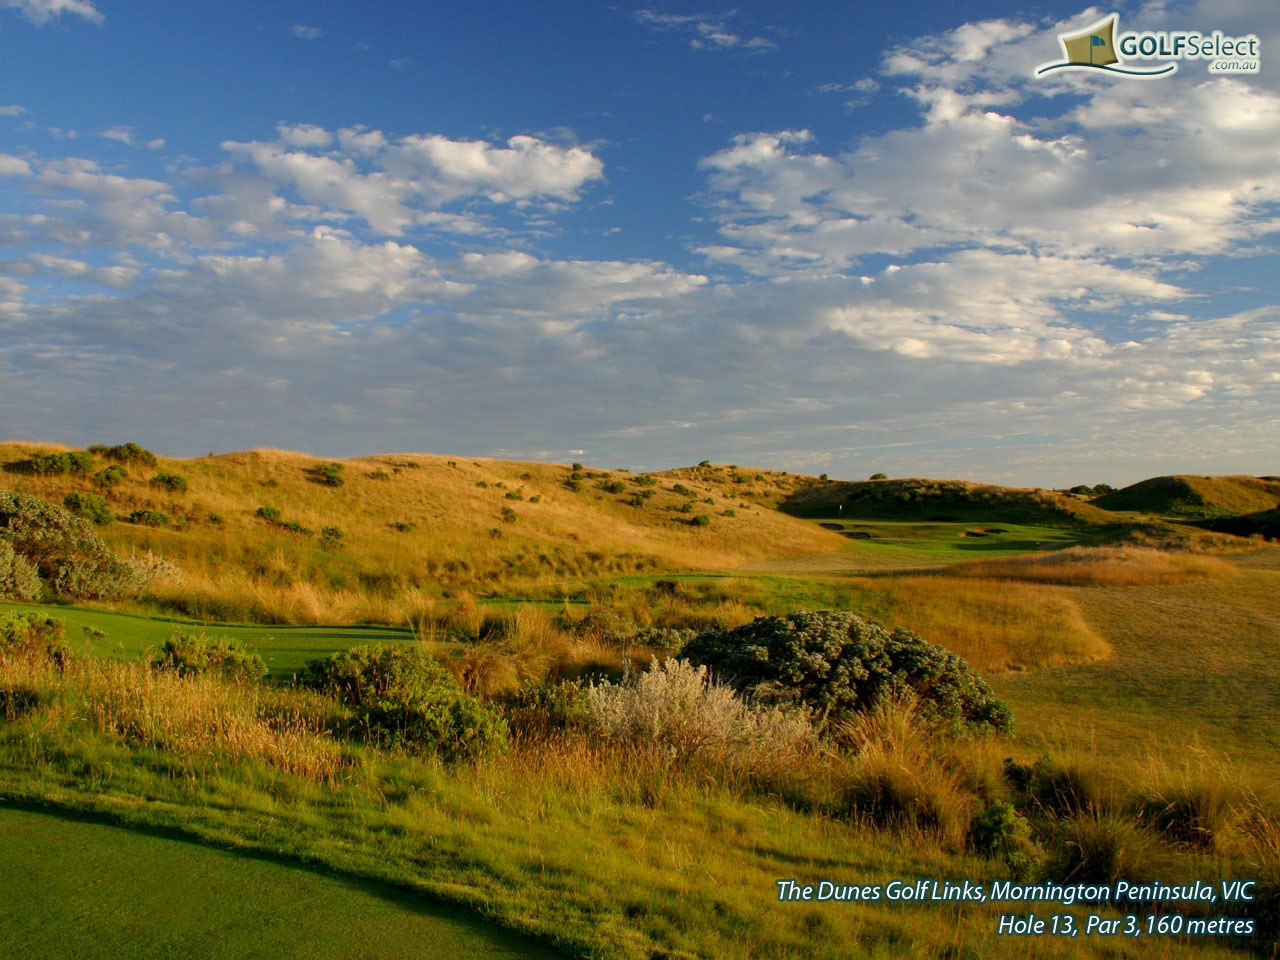 The Dunes Golf Links Hole 13, Par 3, 160 metres